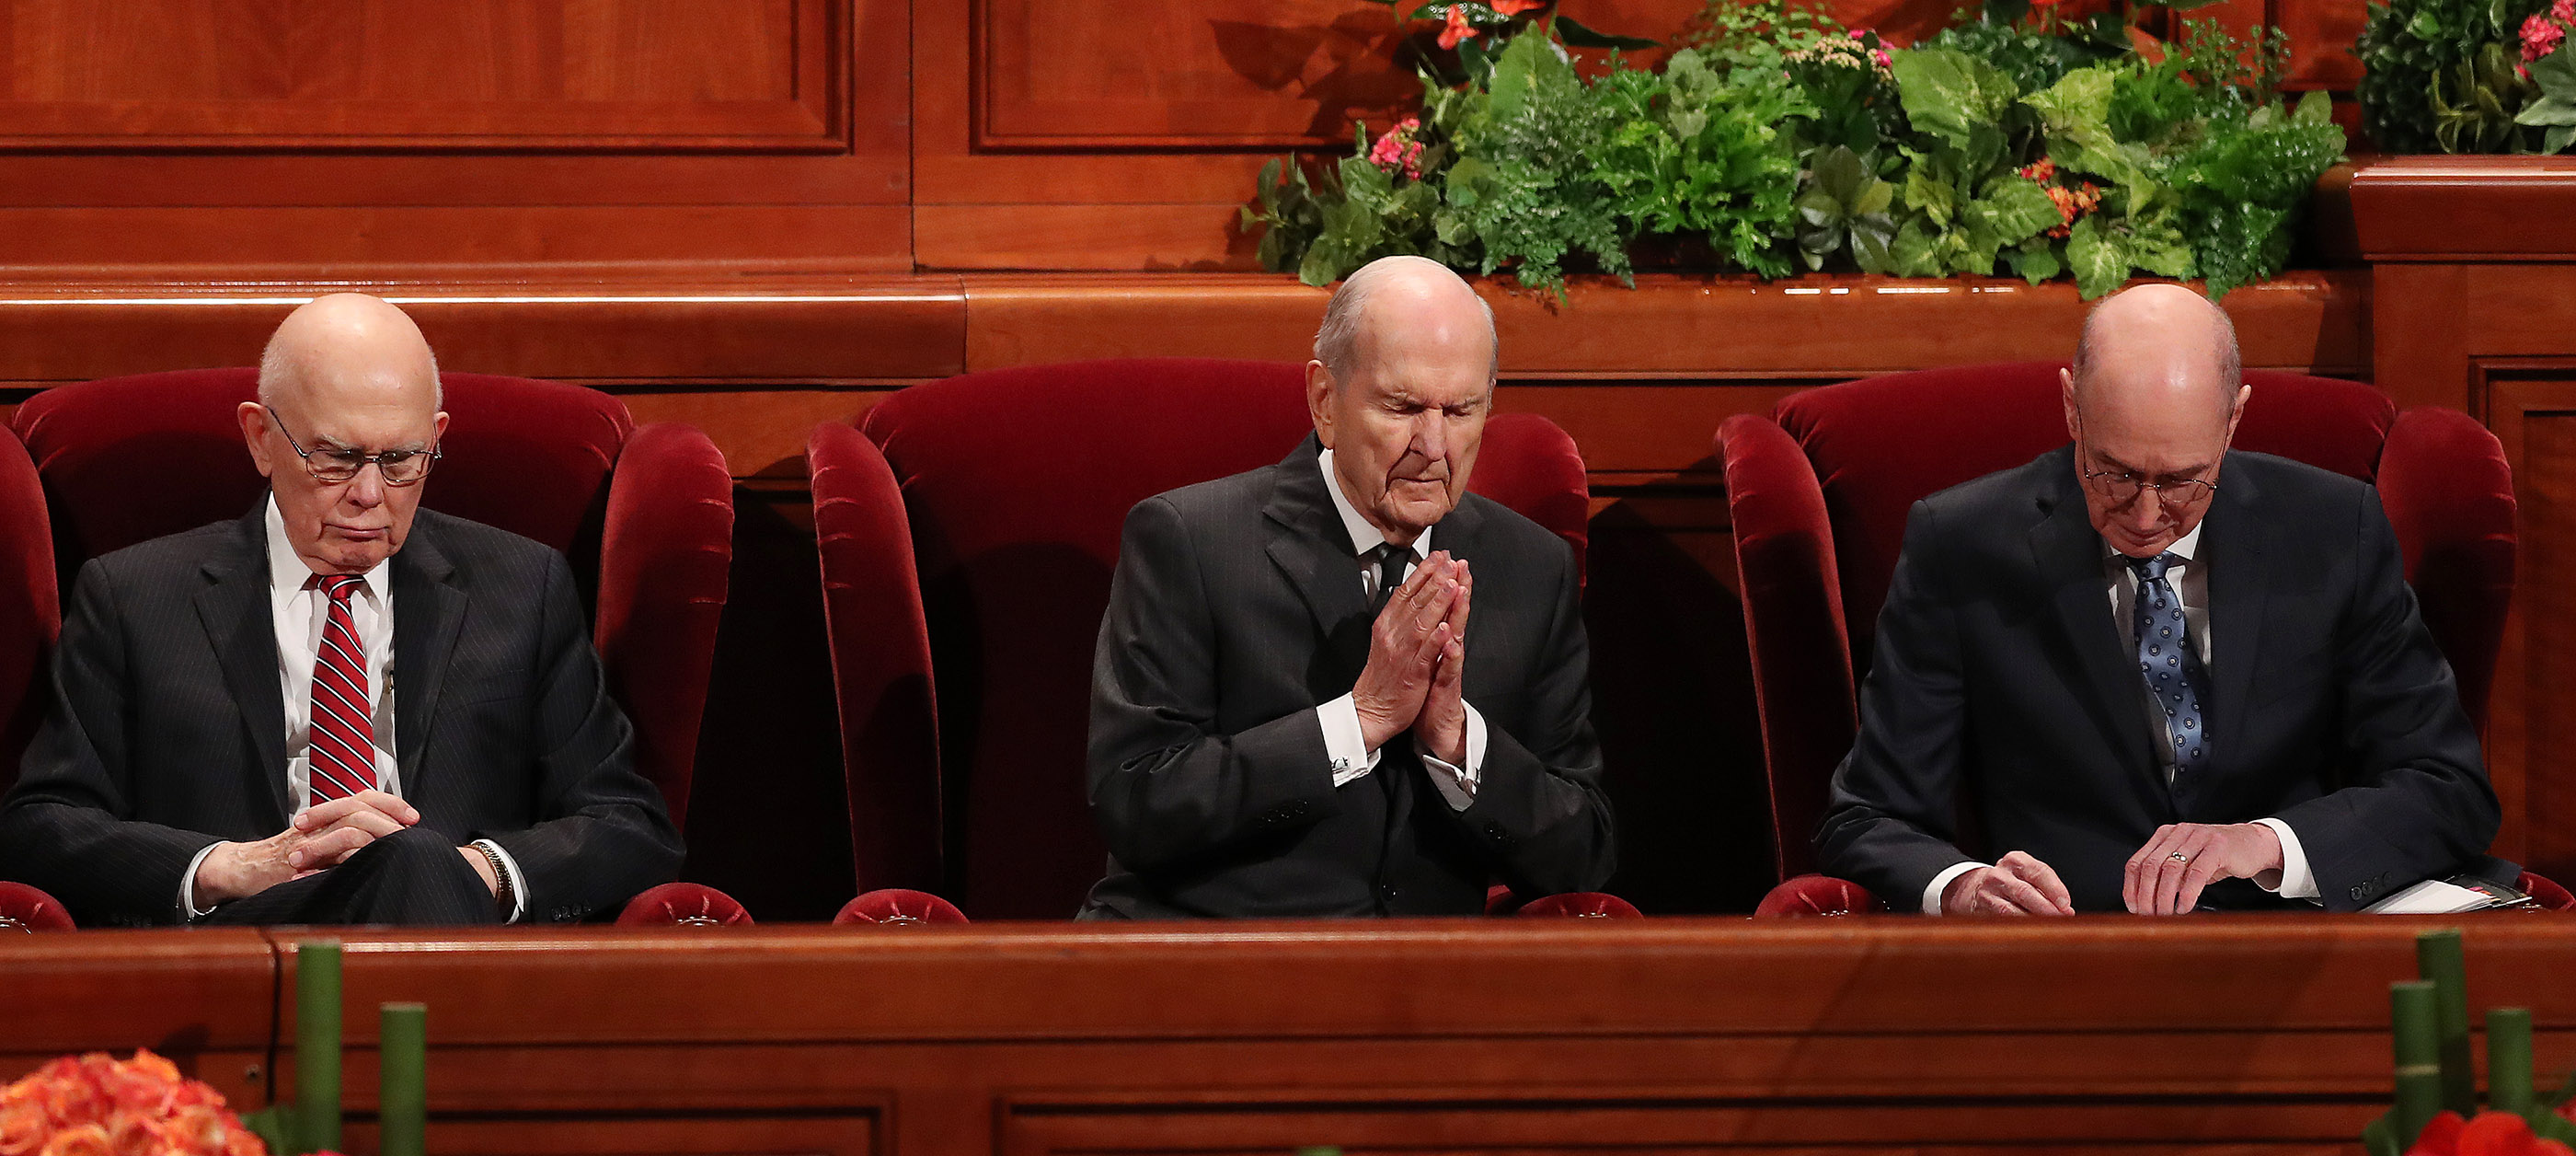 President Russell M. Nelson of The Church of Jesus Christ of Latter-day Saints, center, and his counselors, President Dallin H. Oaks, first counselor in the First Presidency, left, and President Henry B. Eyring, second counselor in the First Presidency, right, listen to the prayer during the 188th Semiannual General Conference of The Church of Jesus Christ of Latter-day Saints in Salt Lake City on Saturday, Oct. 6, 2018.